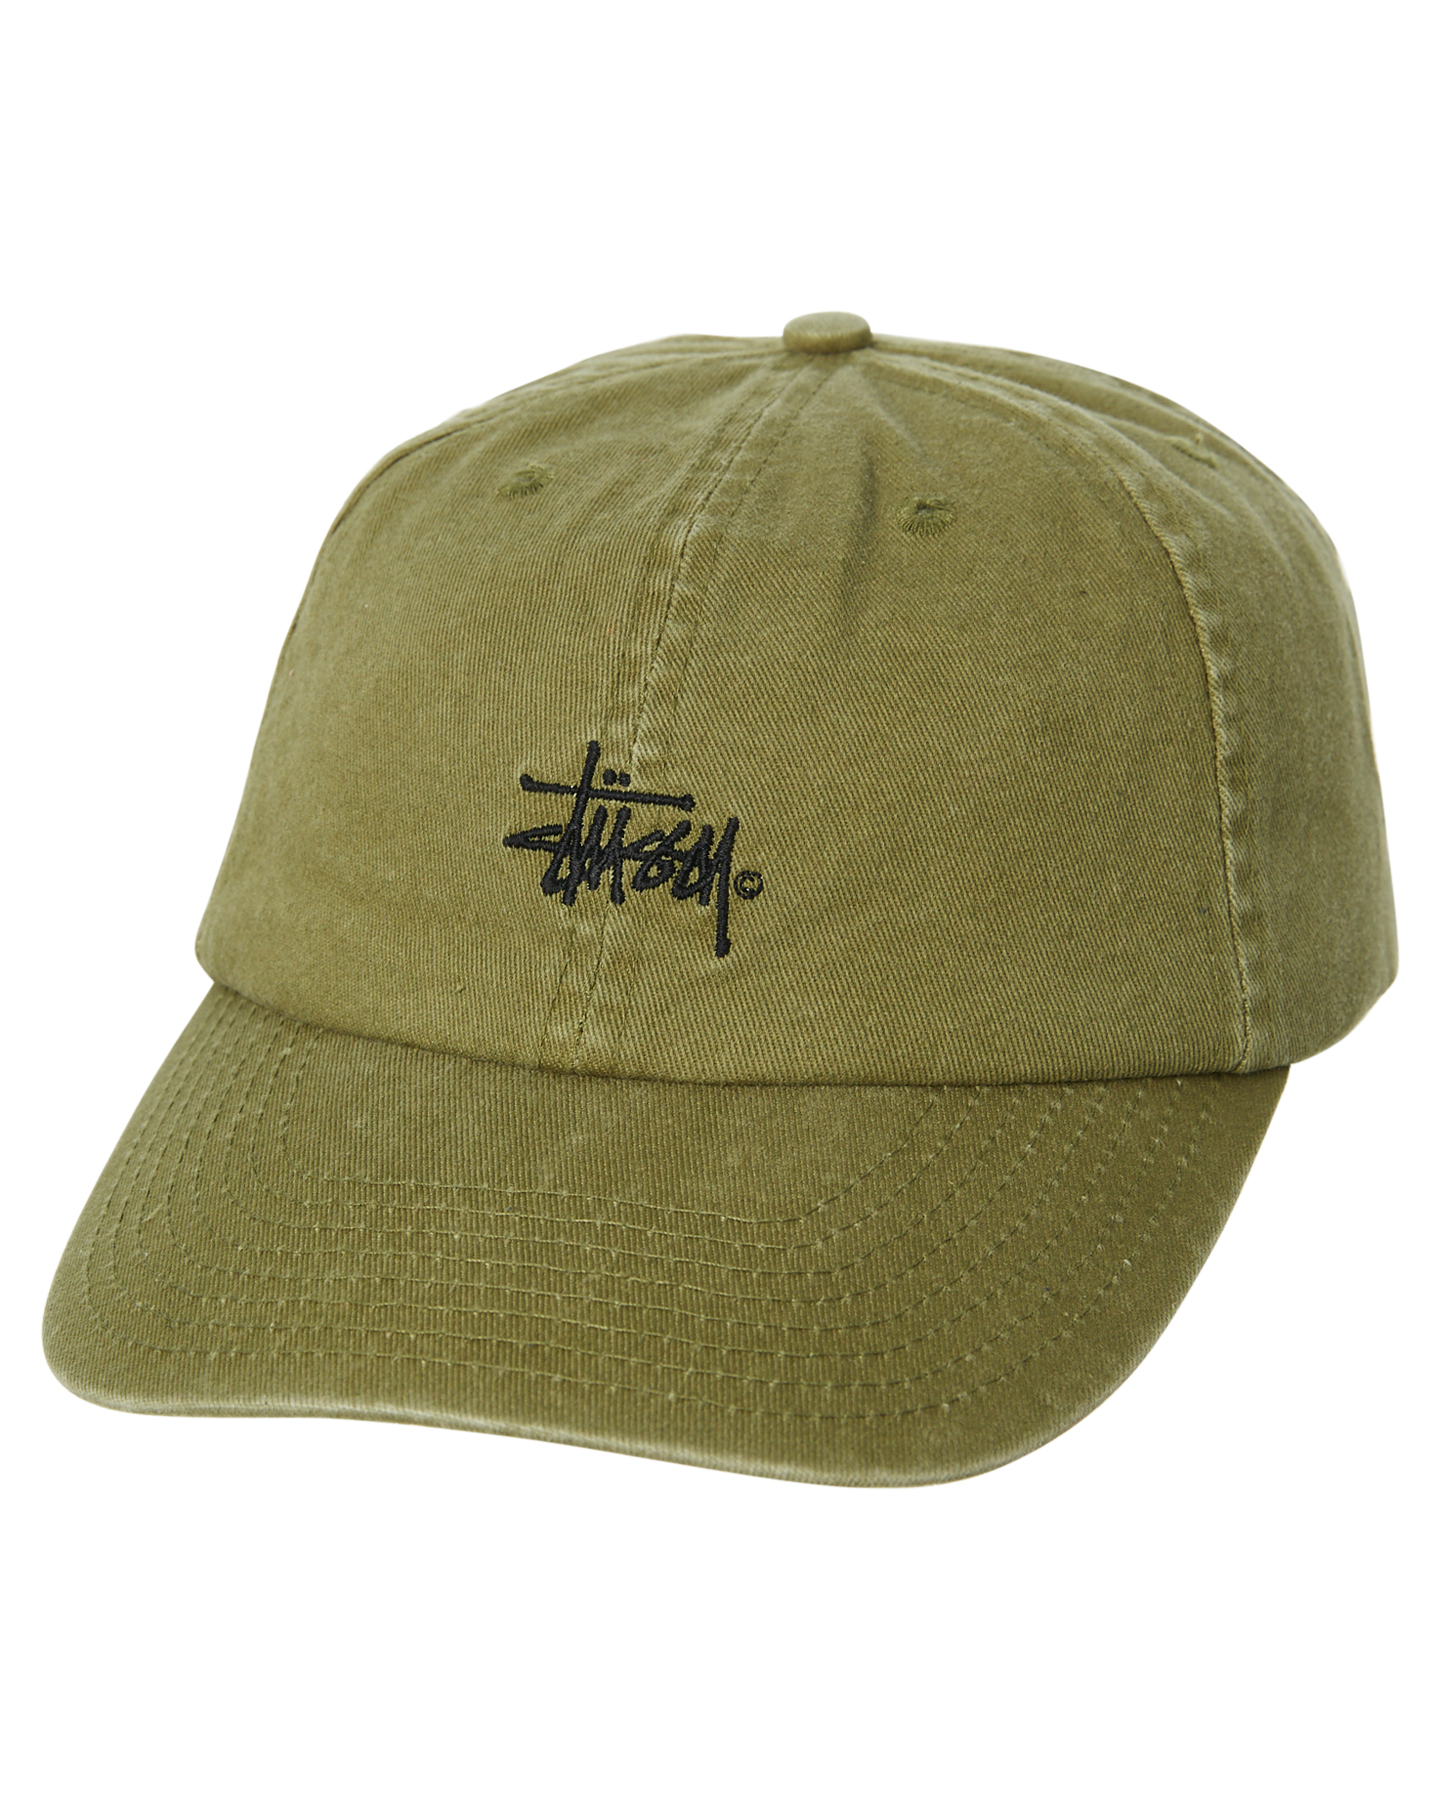 564af35d3e47aa Details about New Stussy Men's Graffiti Low Pro Strapback Cap Cotton  Polyester Green